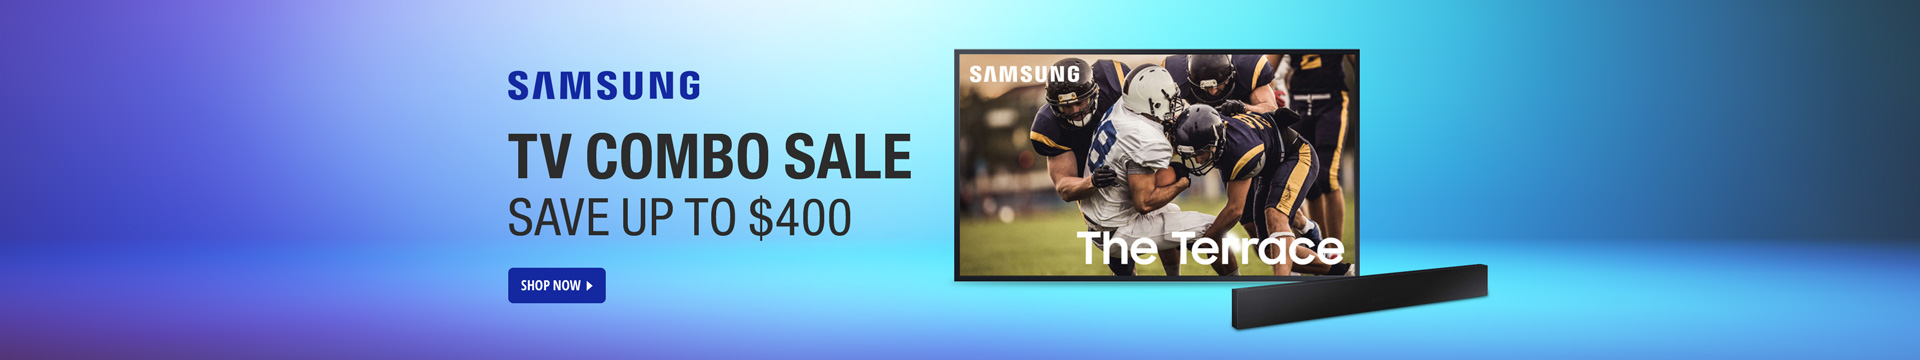 Samsung TV Combo Sale